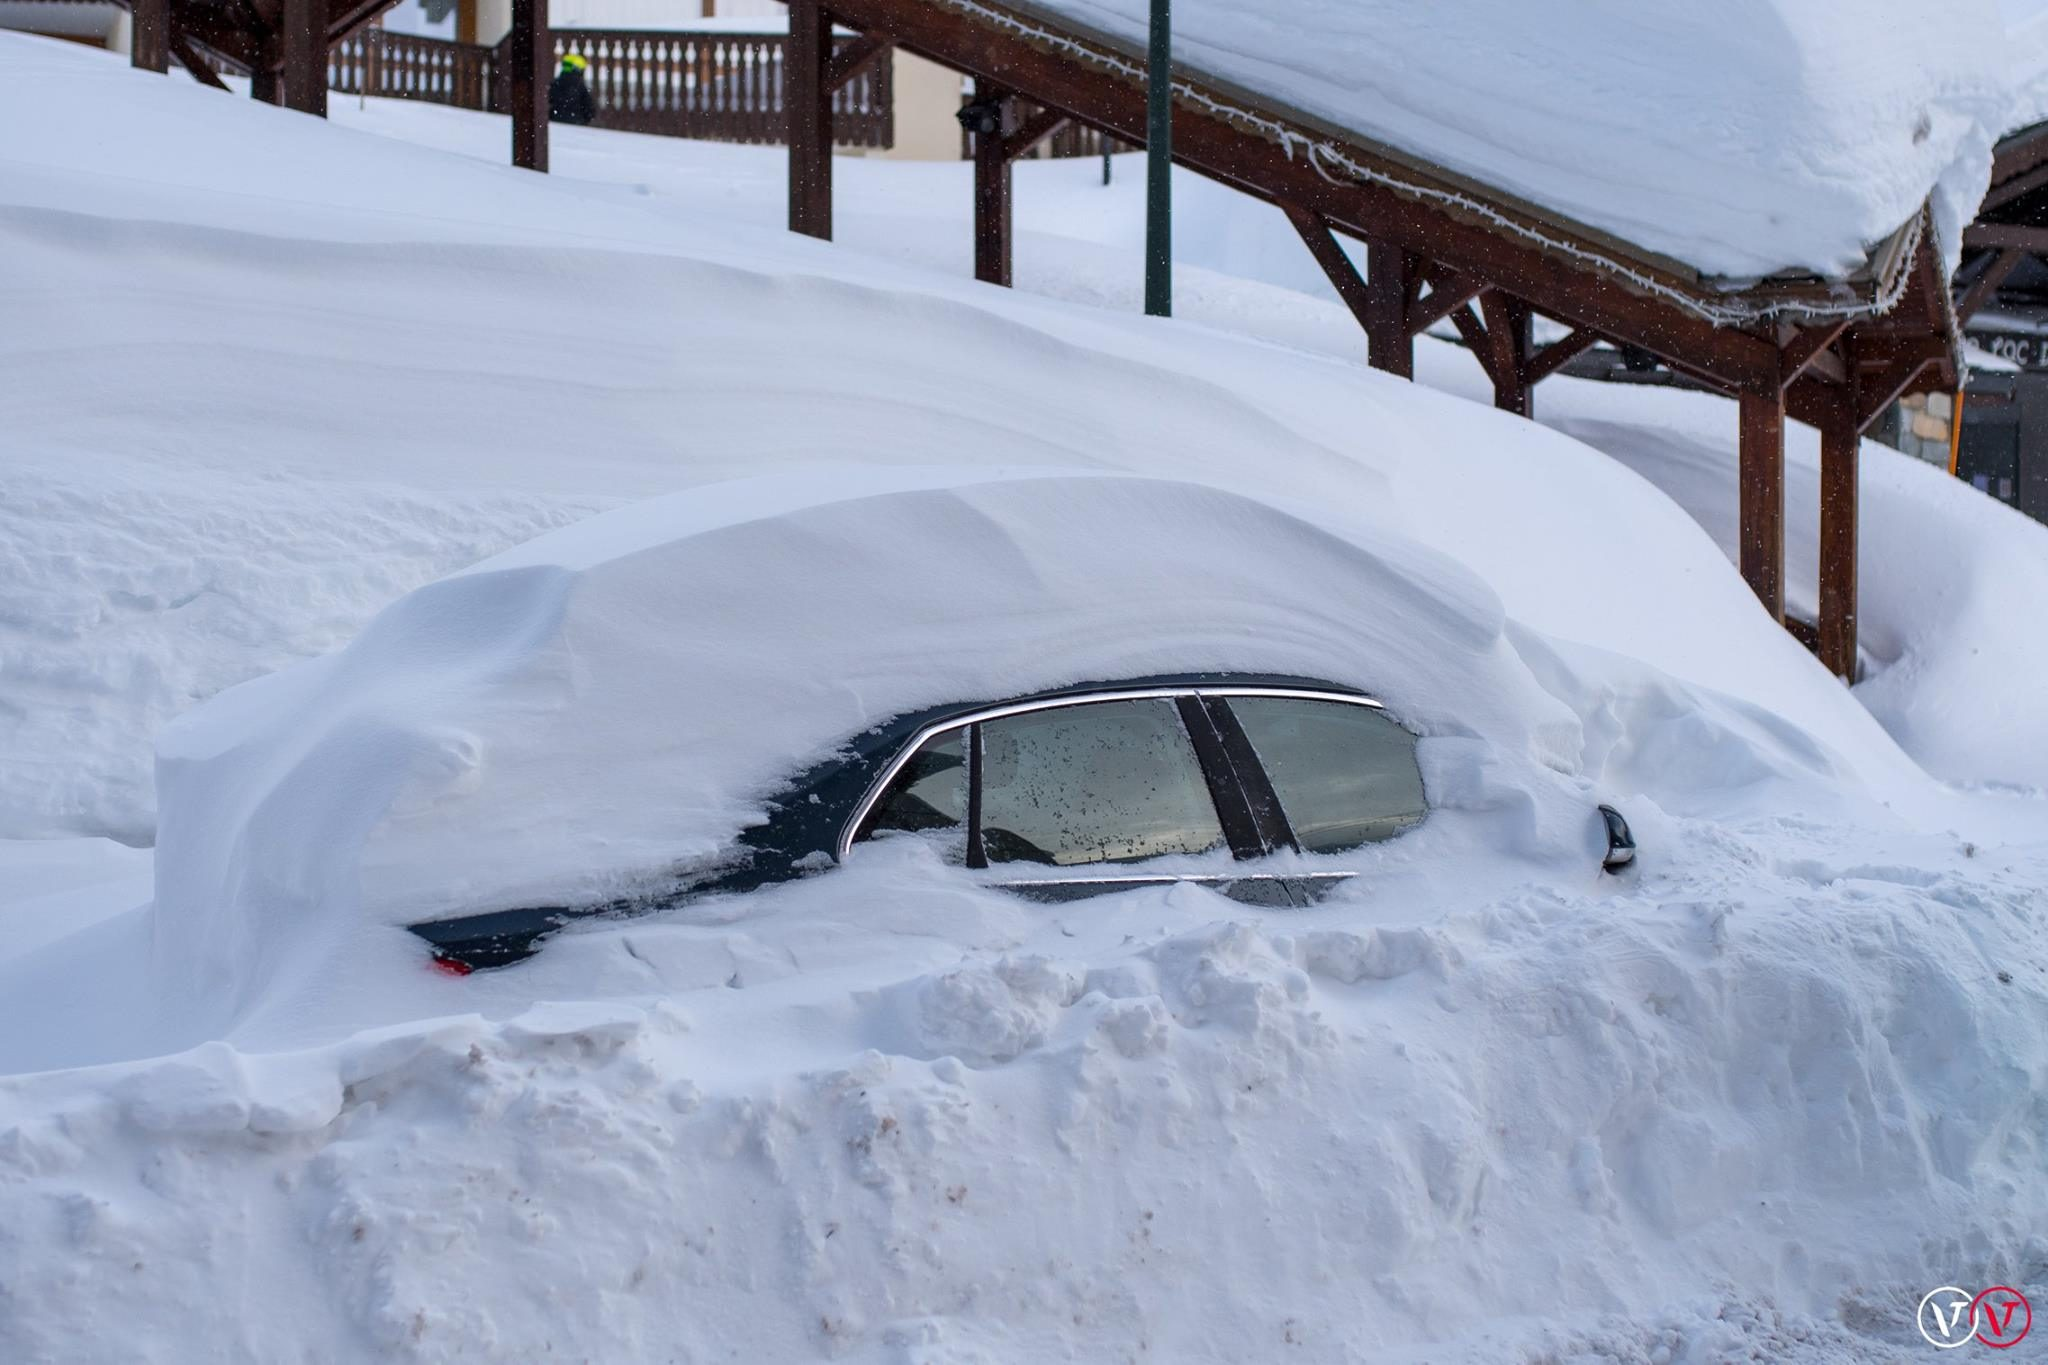 The Start Of 2018 Has Seen Unprecedented Snowfall In Alps With Resorts Cut Off By Snow Covered Roads Or High Avalanche Danger Its Hard To Think Now